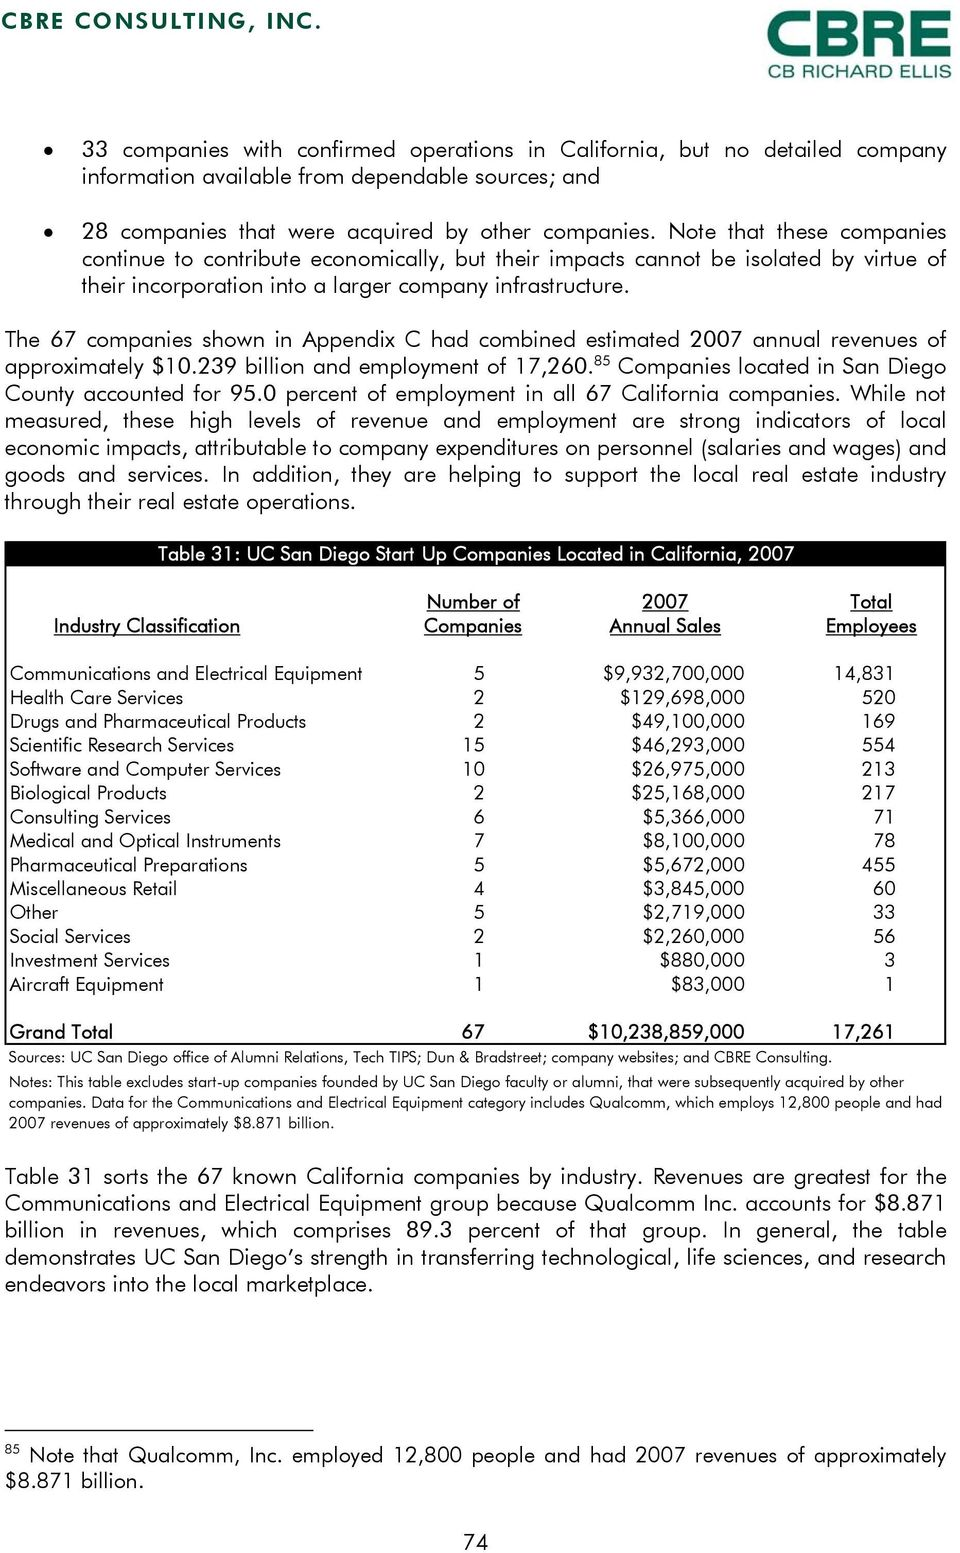 The 67 companies shown in Appendix C had combined estimated 2007 annual revenues of approximately $10.239 billion and employment of 17,260. 85 Companies located in San Diego County accounted for 95.